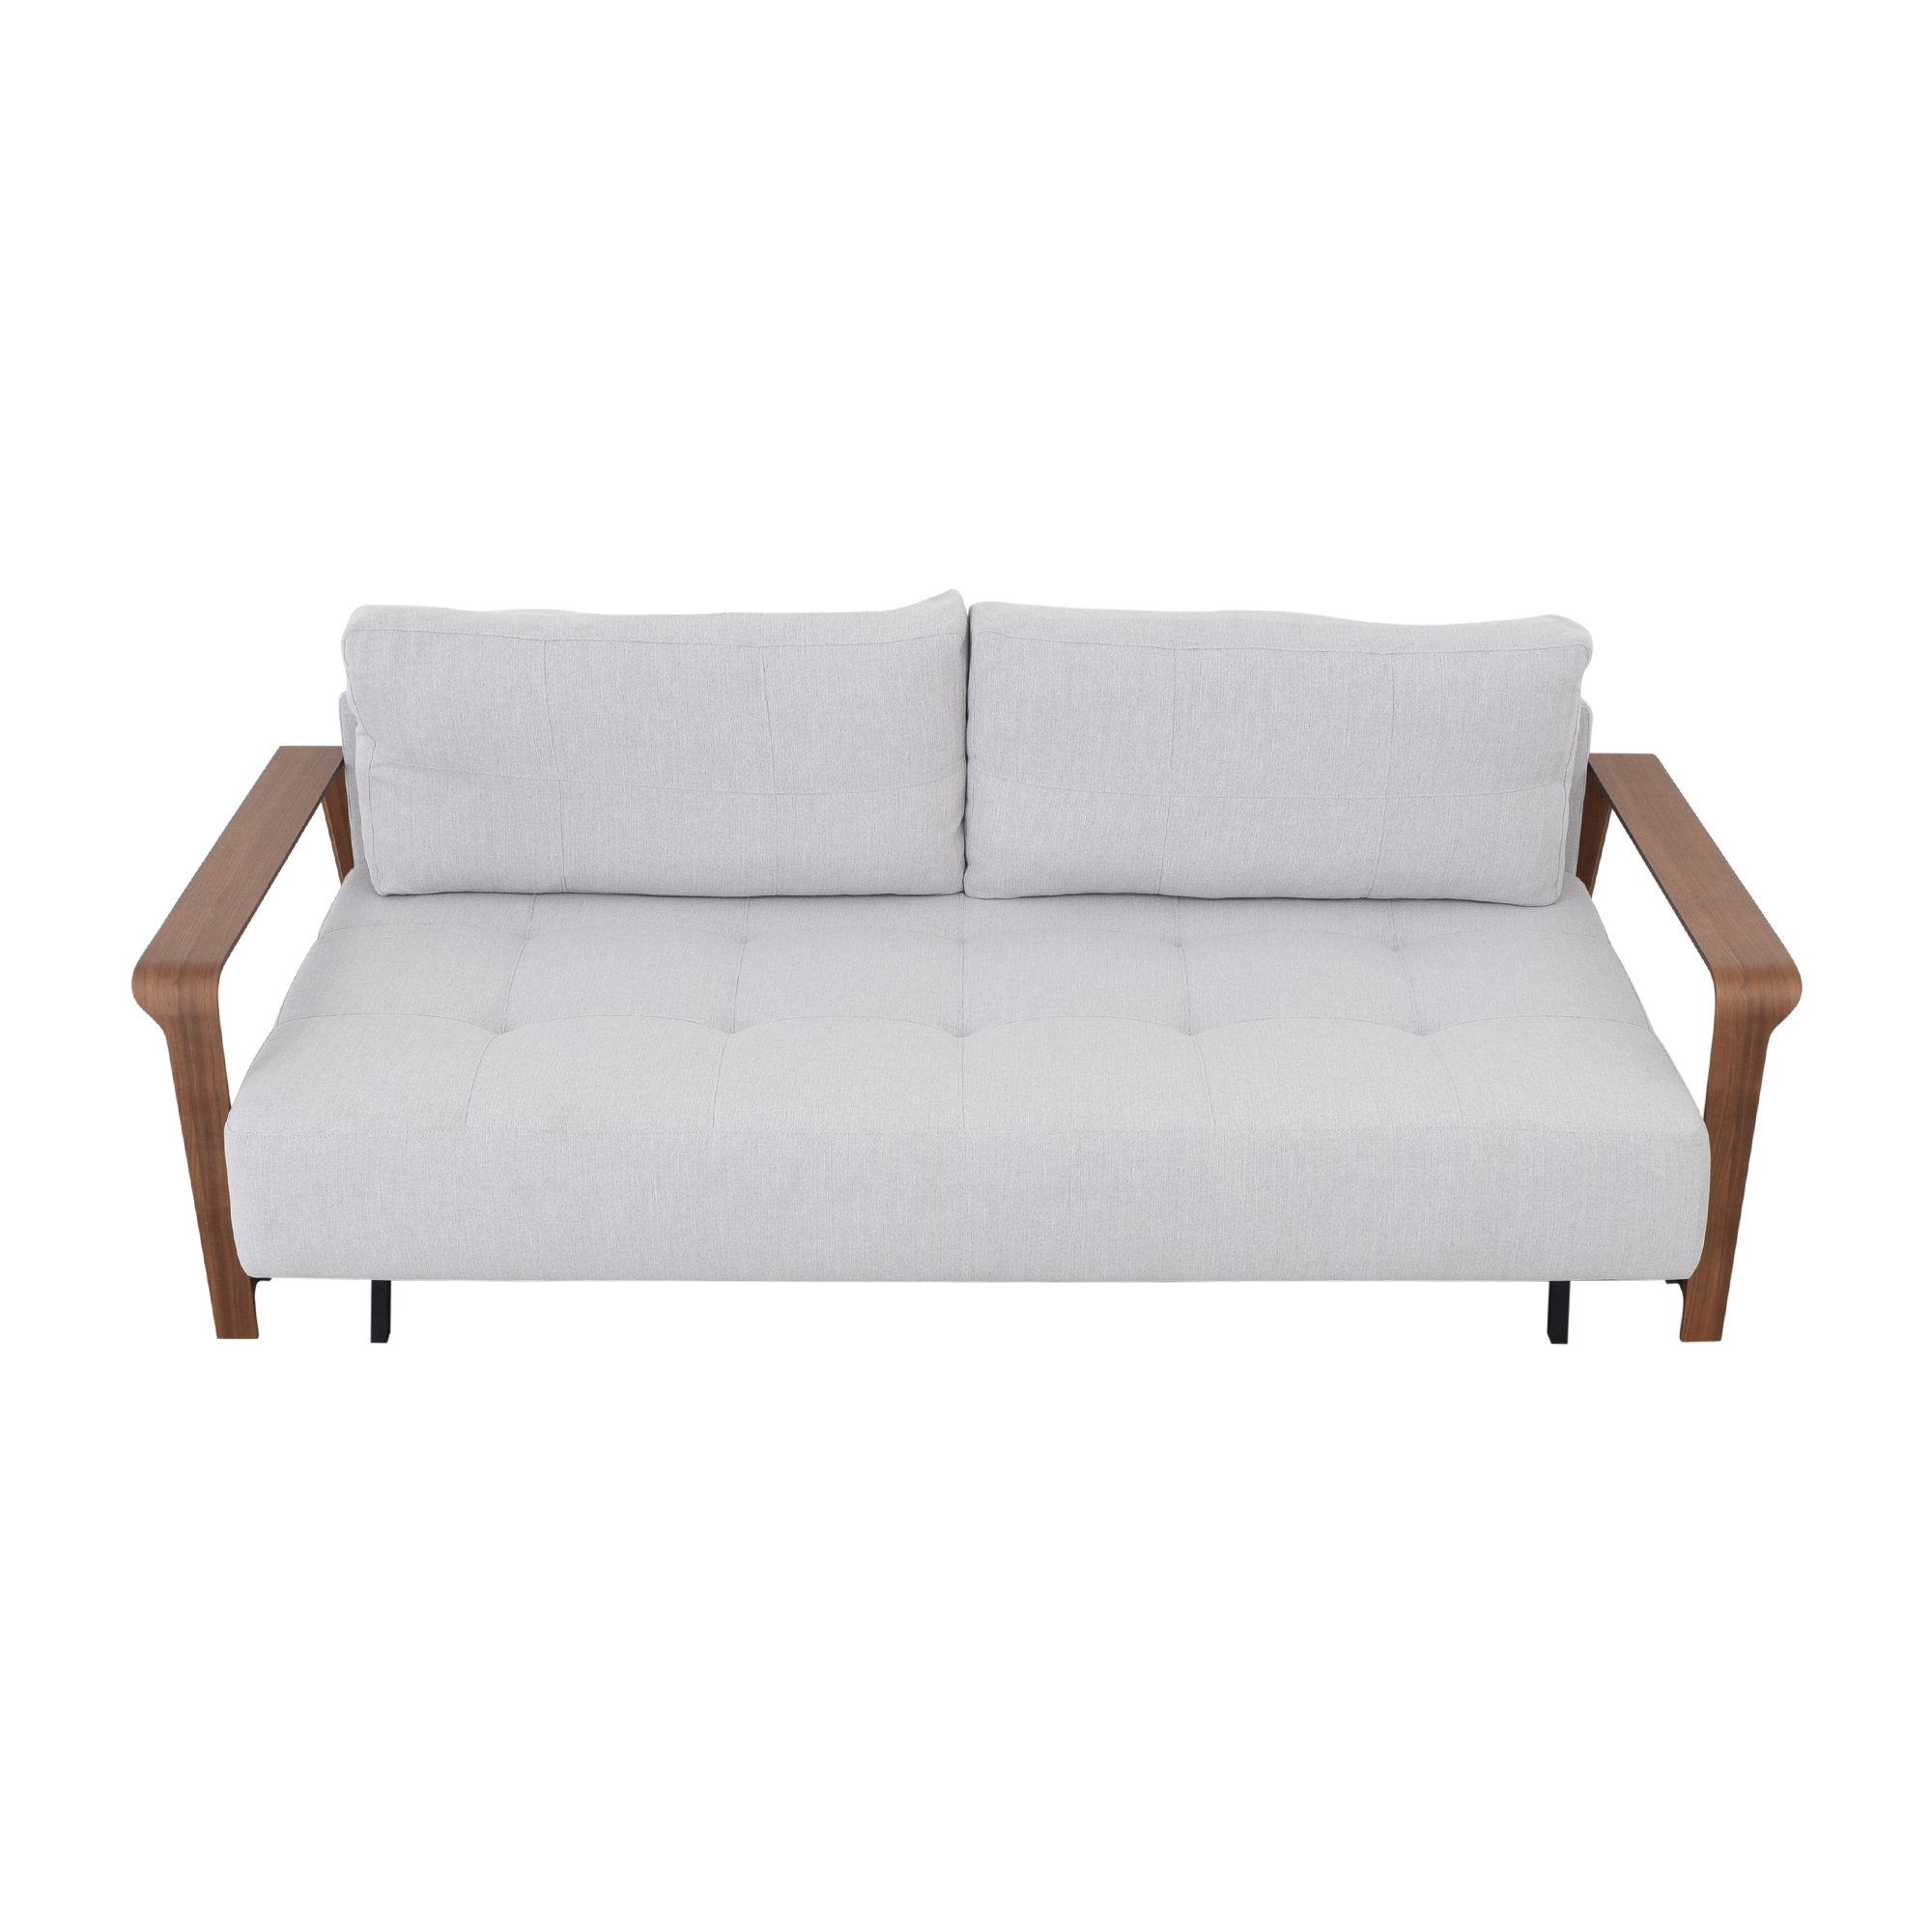 shop Innovation Living Ran Deluxe Sofa Bed Innovation Living Classic Sofas